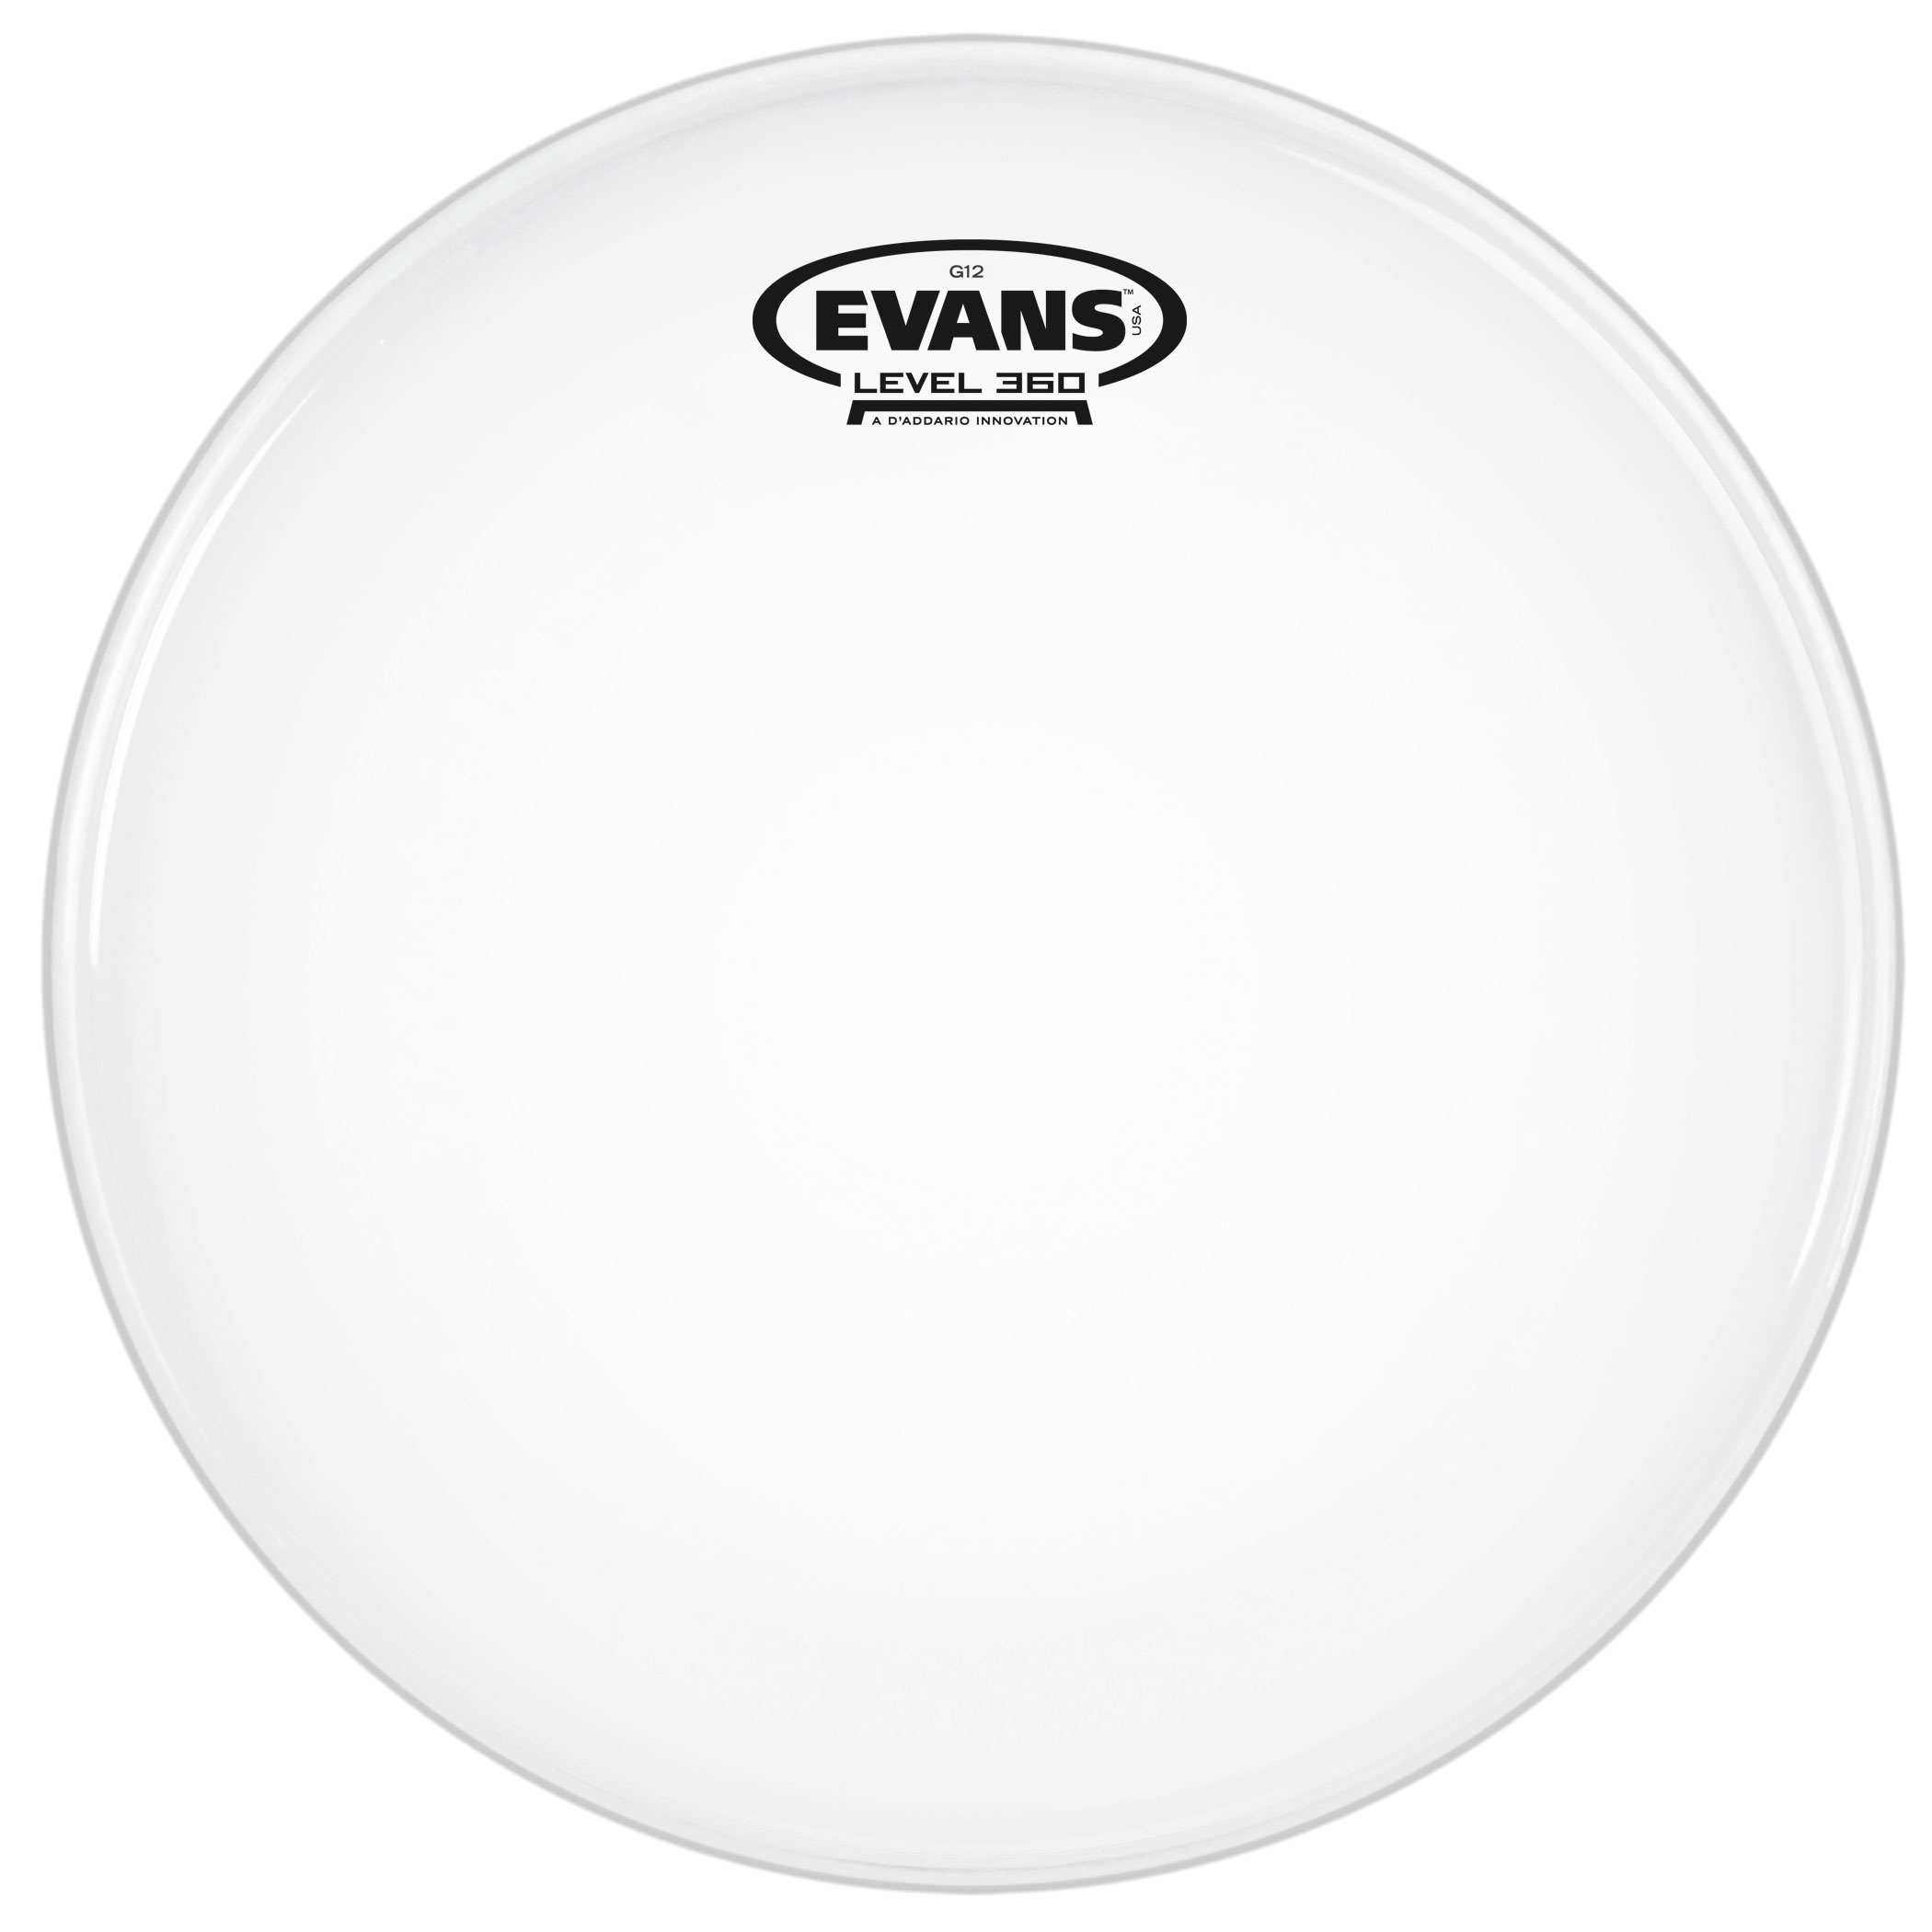 "Evans 6"" G12 Coated Head"